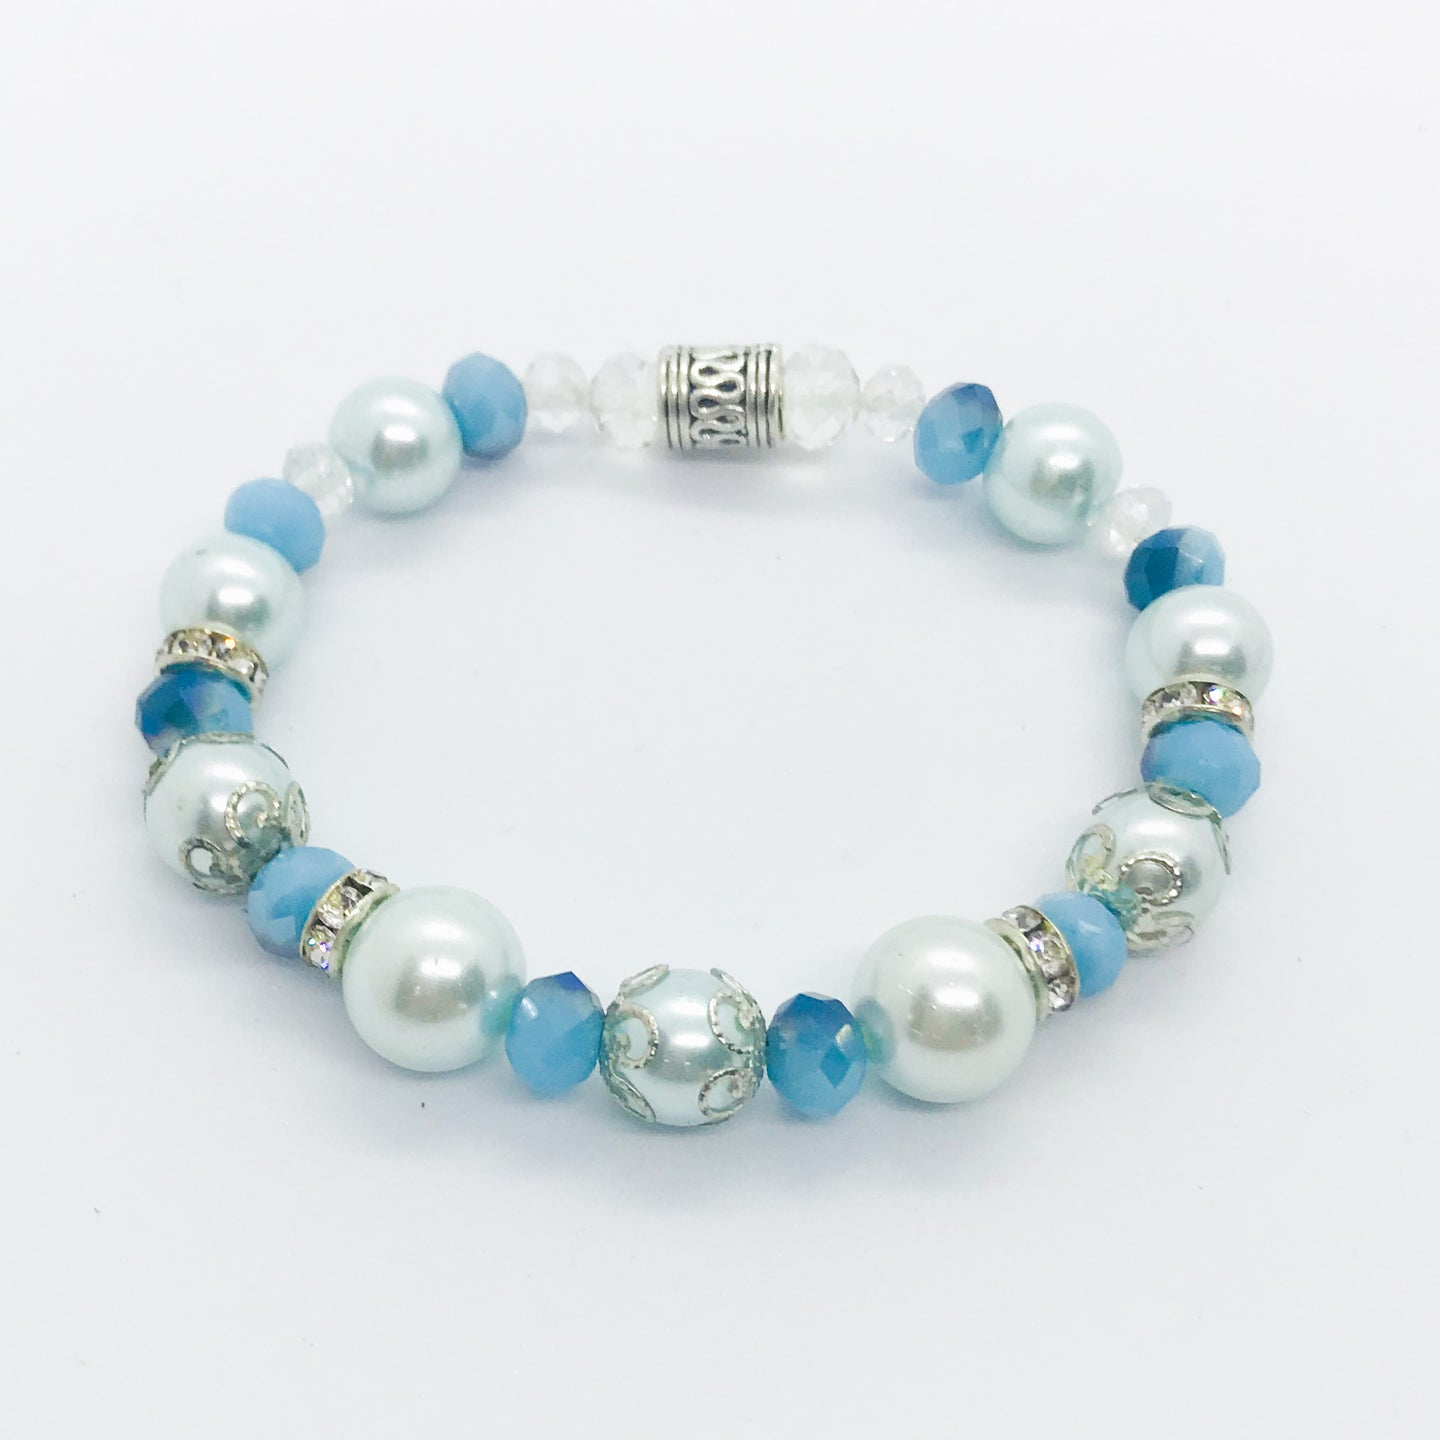 Glass Bead Stretchy Bracelet - B477